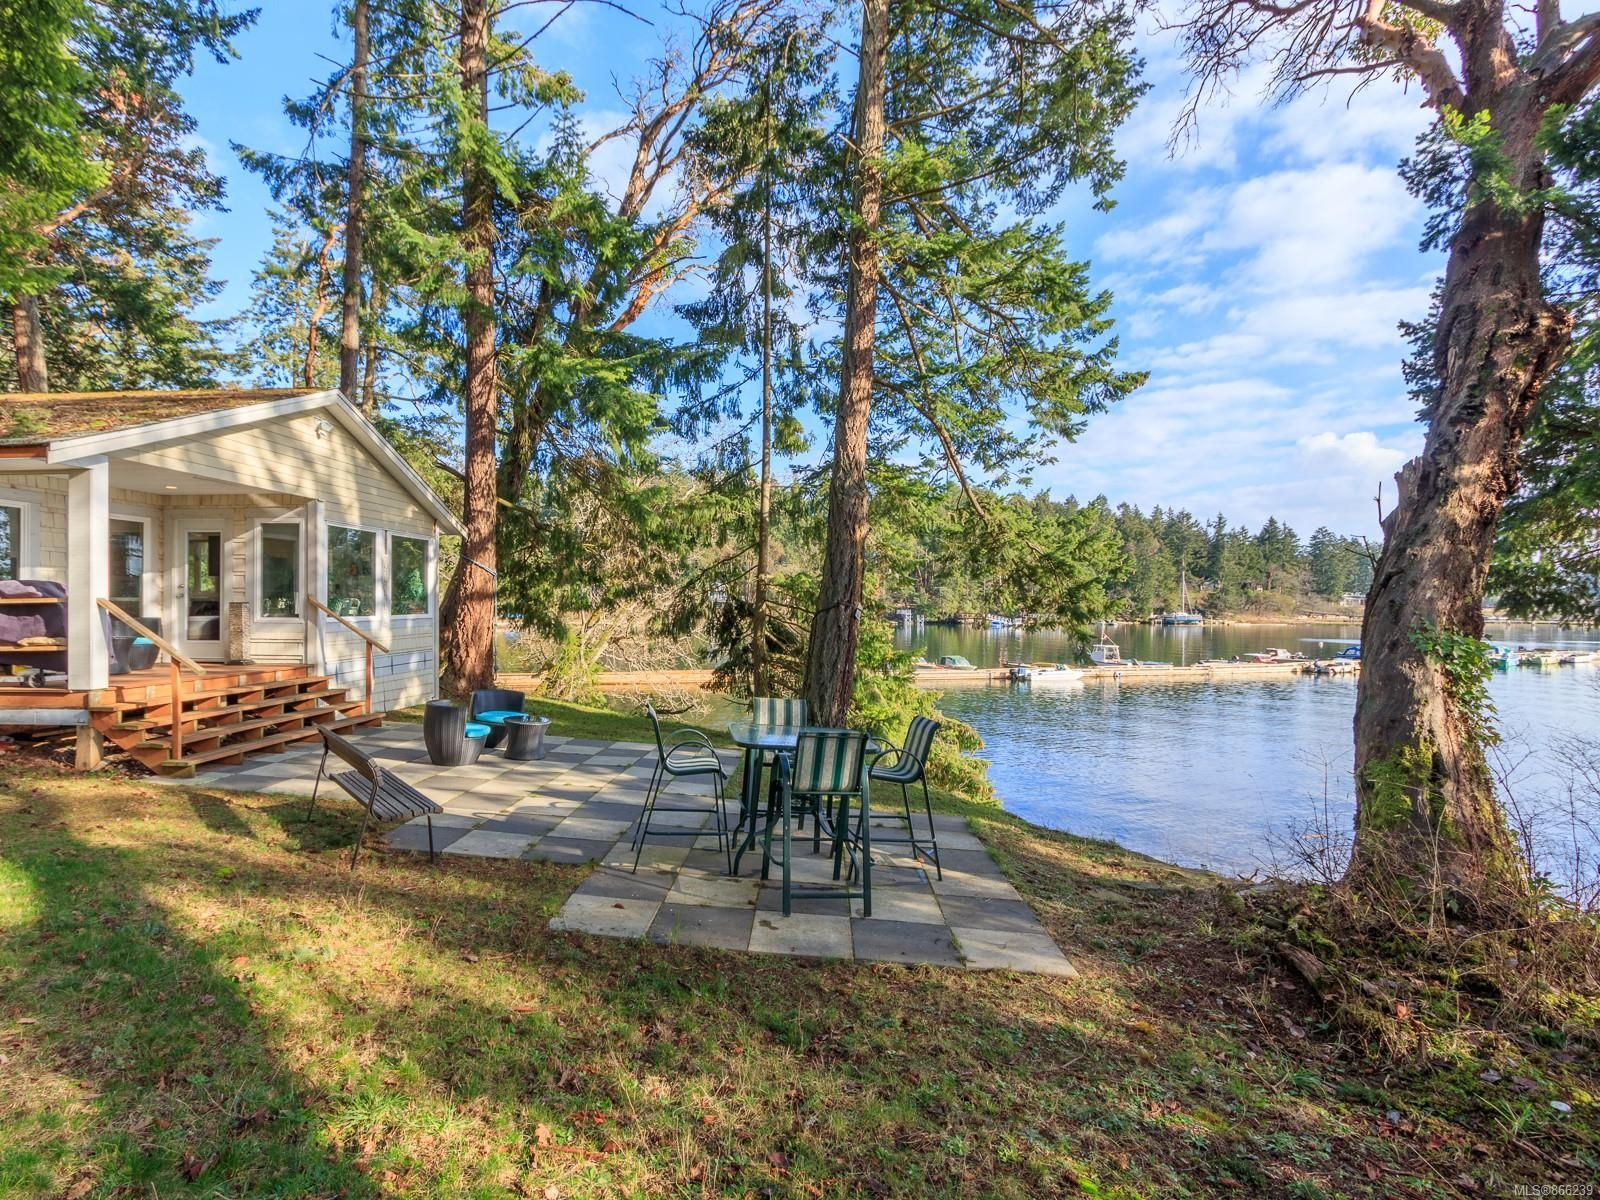 Main Photo: 7 Pirates Lane in : Isl Protection Island House for sale (Islands)  : MLS®# 866239